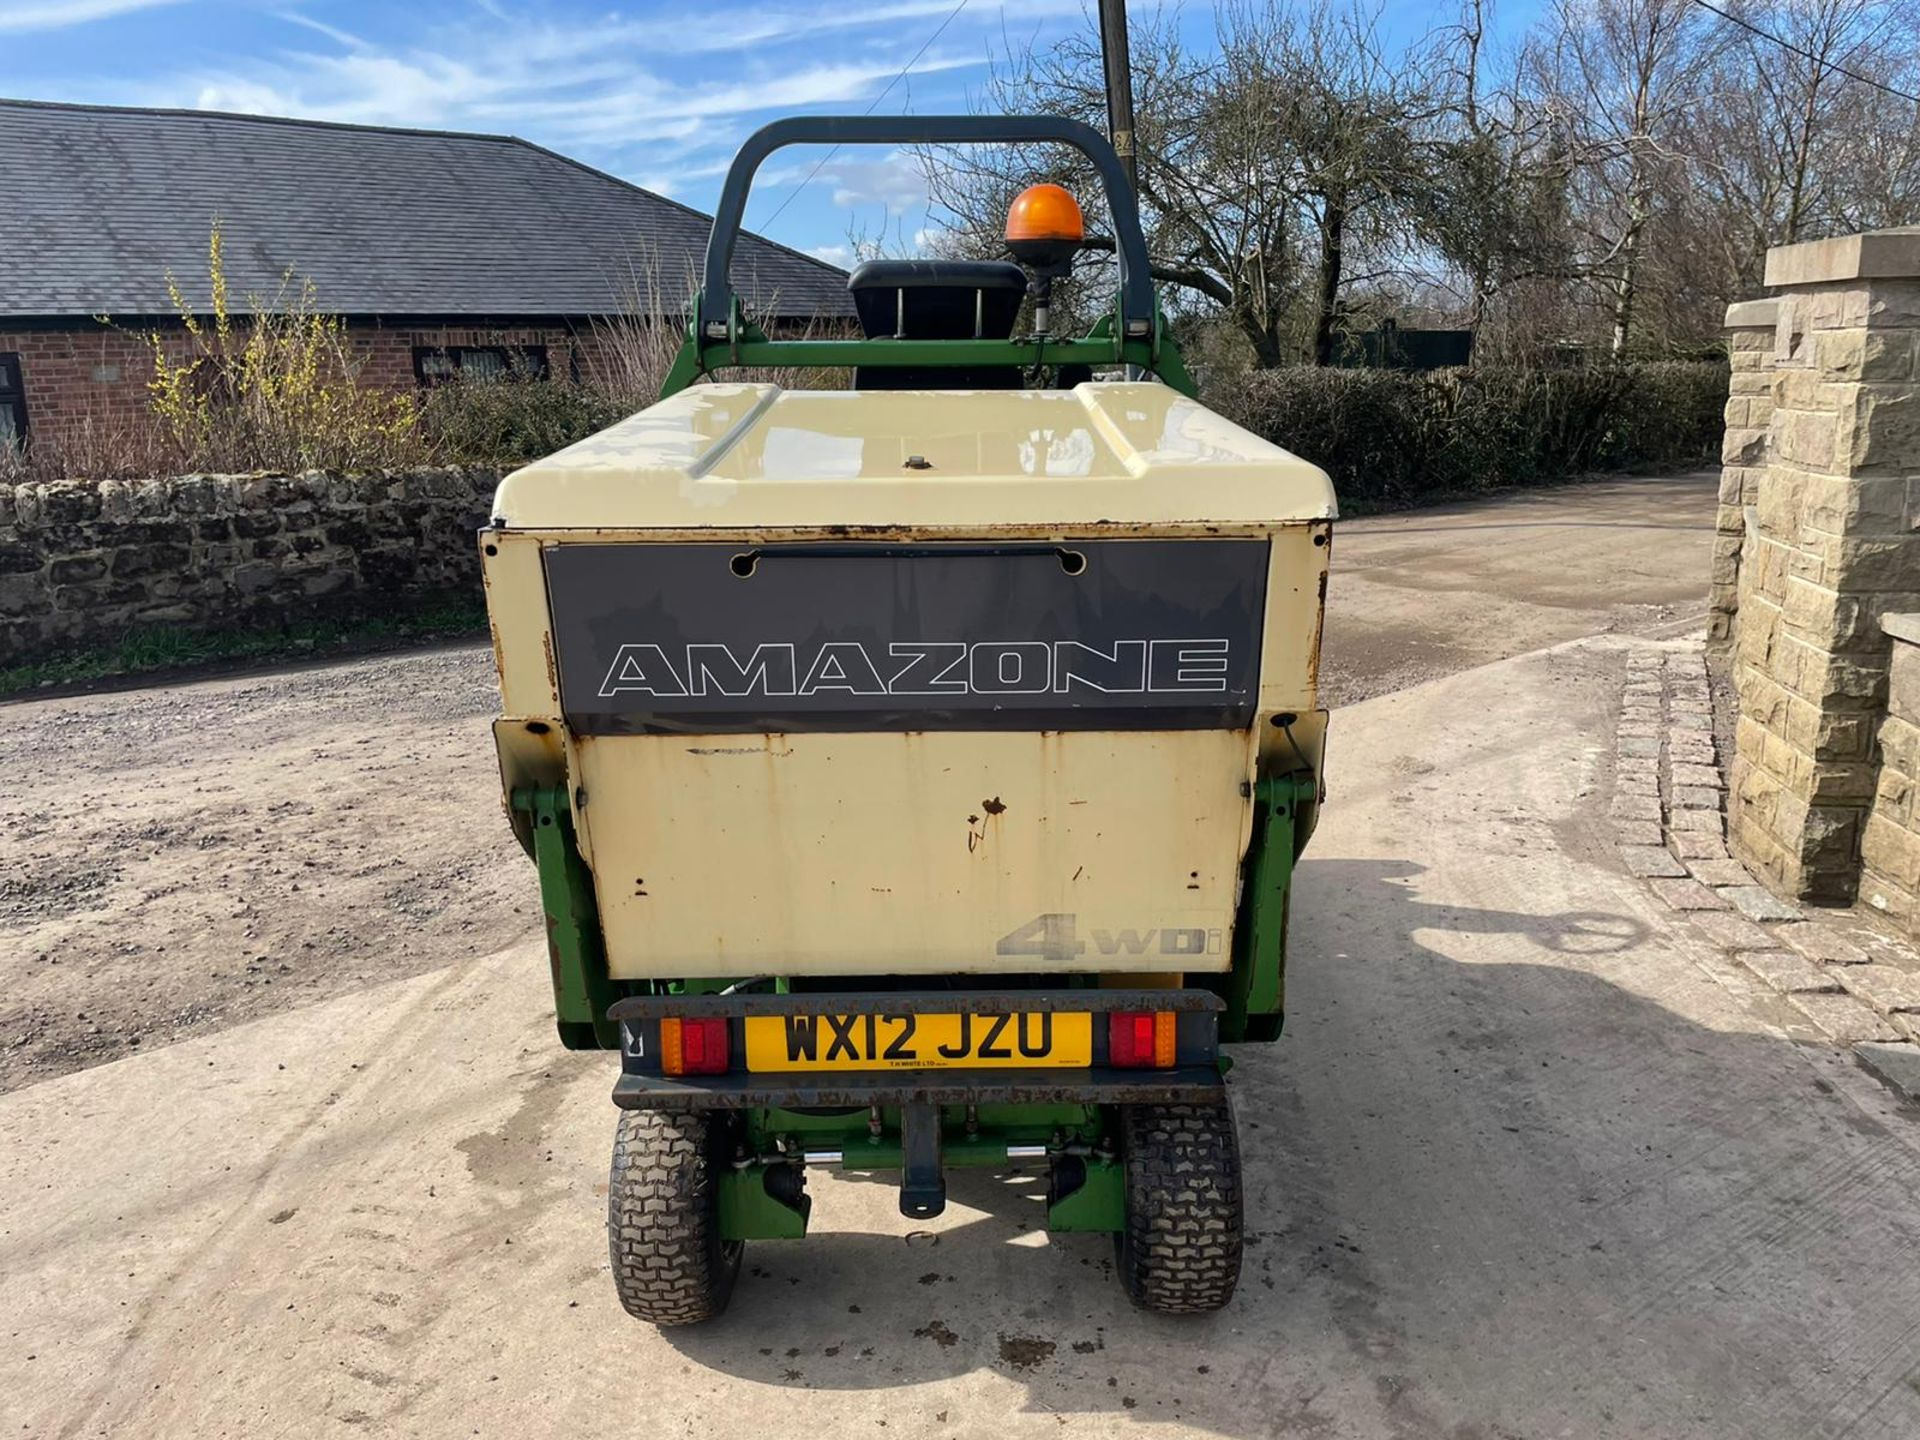 2012 AMAZONE PROFIHOPPER RIDE ON MOWER, RUNS, DRIVES AND CUTS, IN GOOD CONDITION *PLUS VAT* - Image 7 of 14